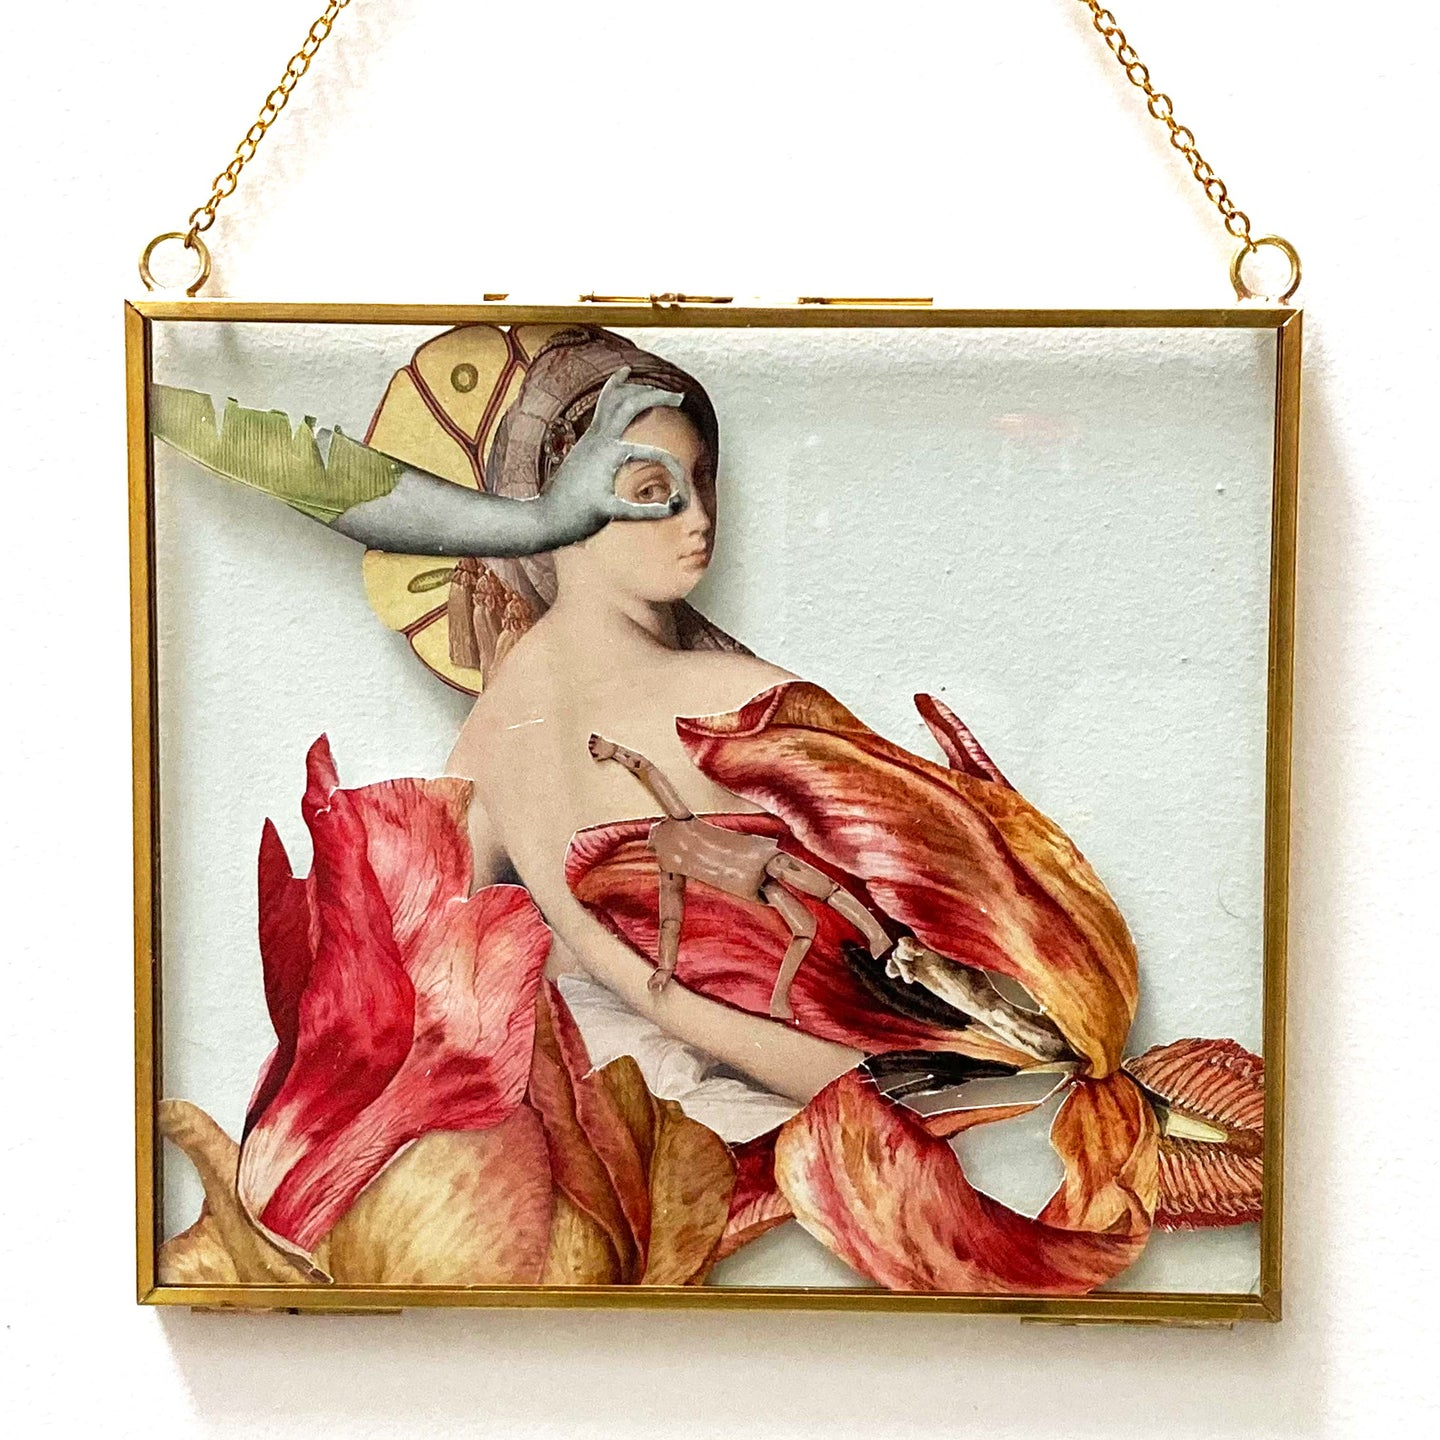 BLONDEL Sidonie - Odalisque (Collage/verre) - Collage